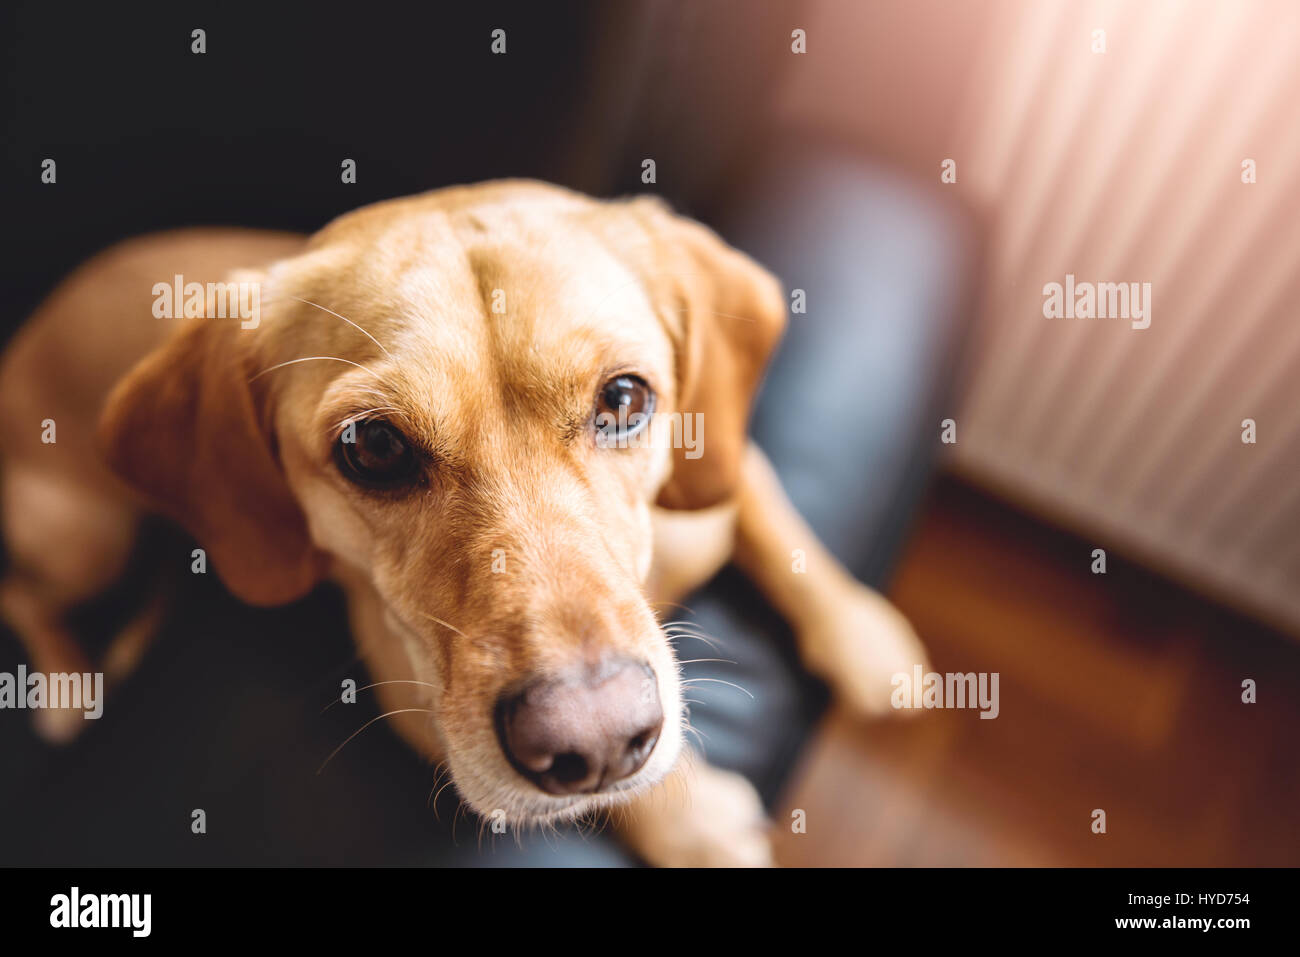 Small yellow dog sitting on black sofa - Stock Image